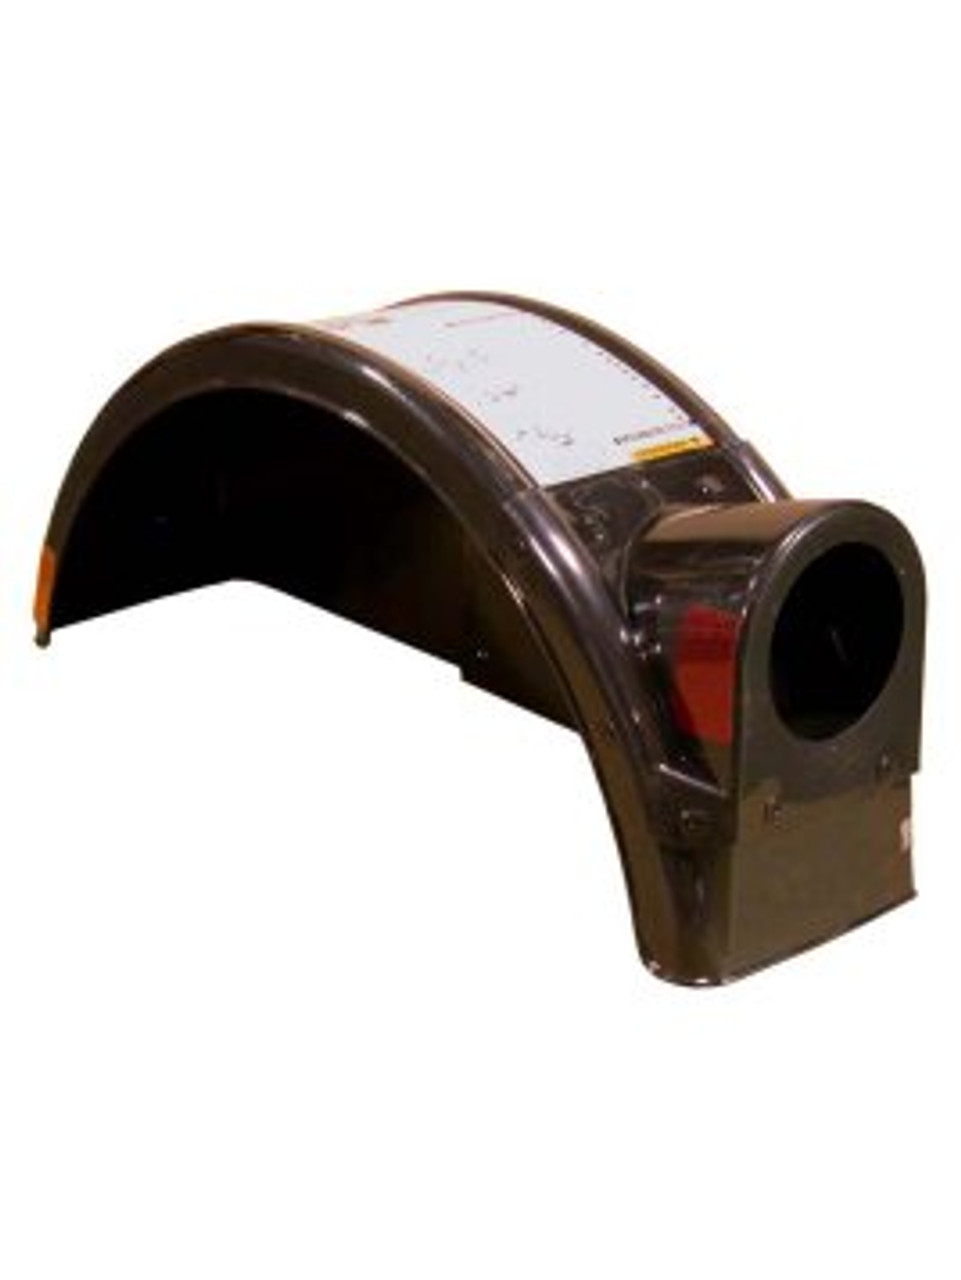 03772X --- CROFT Tow Dolly Fender - Left Side